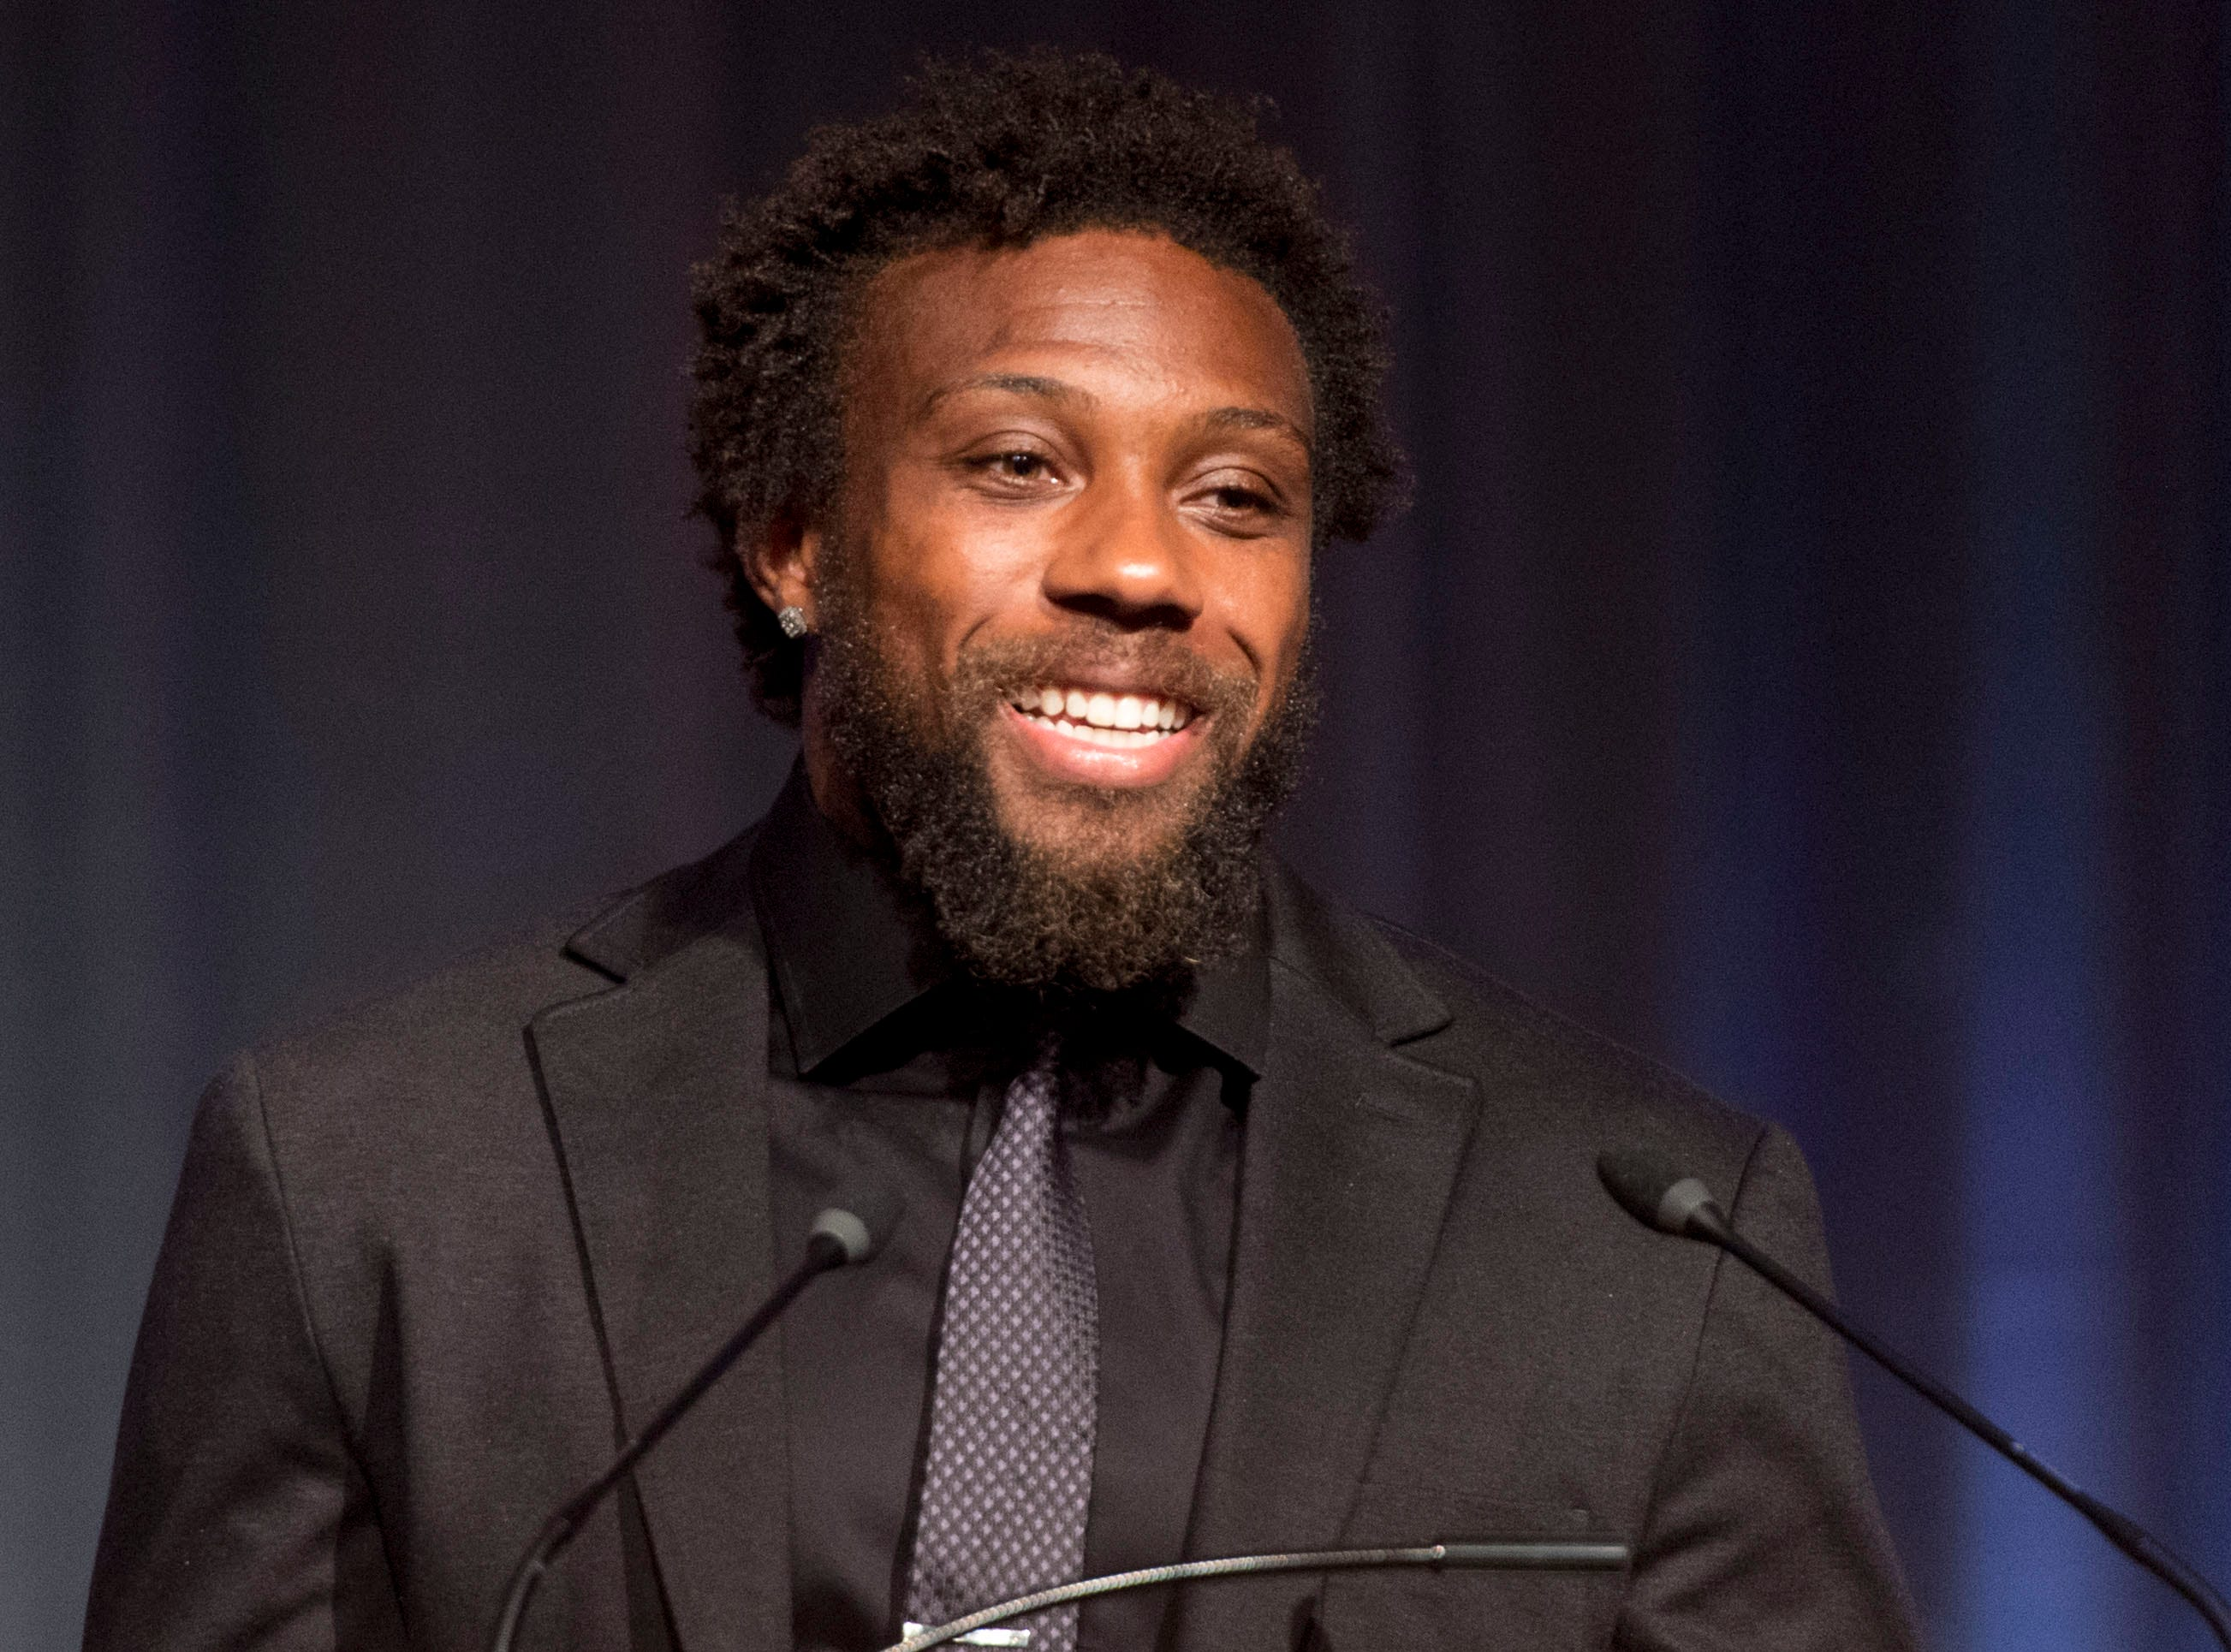 Kansas City Chiefs safety and former Tennessee player Eric Berry addresses guests after receiving the 2016 Pat Summitt Ignite Greatness Award during the Greater Knoxville Sports Hall of Fame Dinner and Induction Ceremony at the Knoxville Convention Center on Tuesday, July 26, 2016.